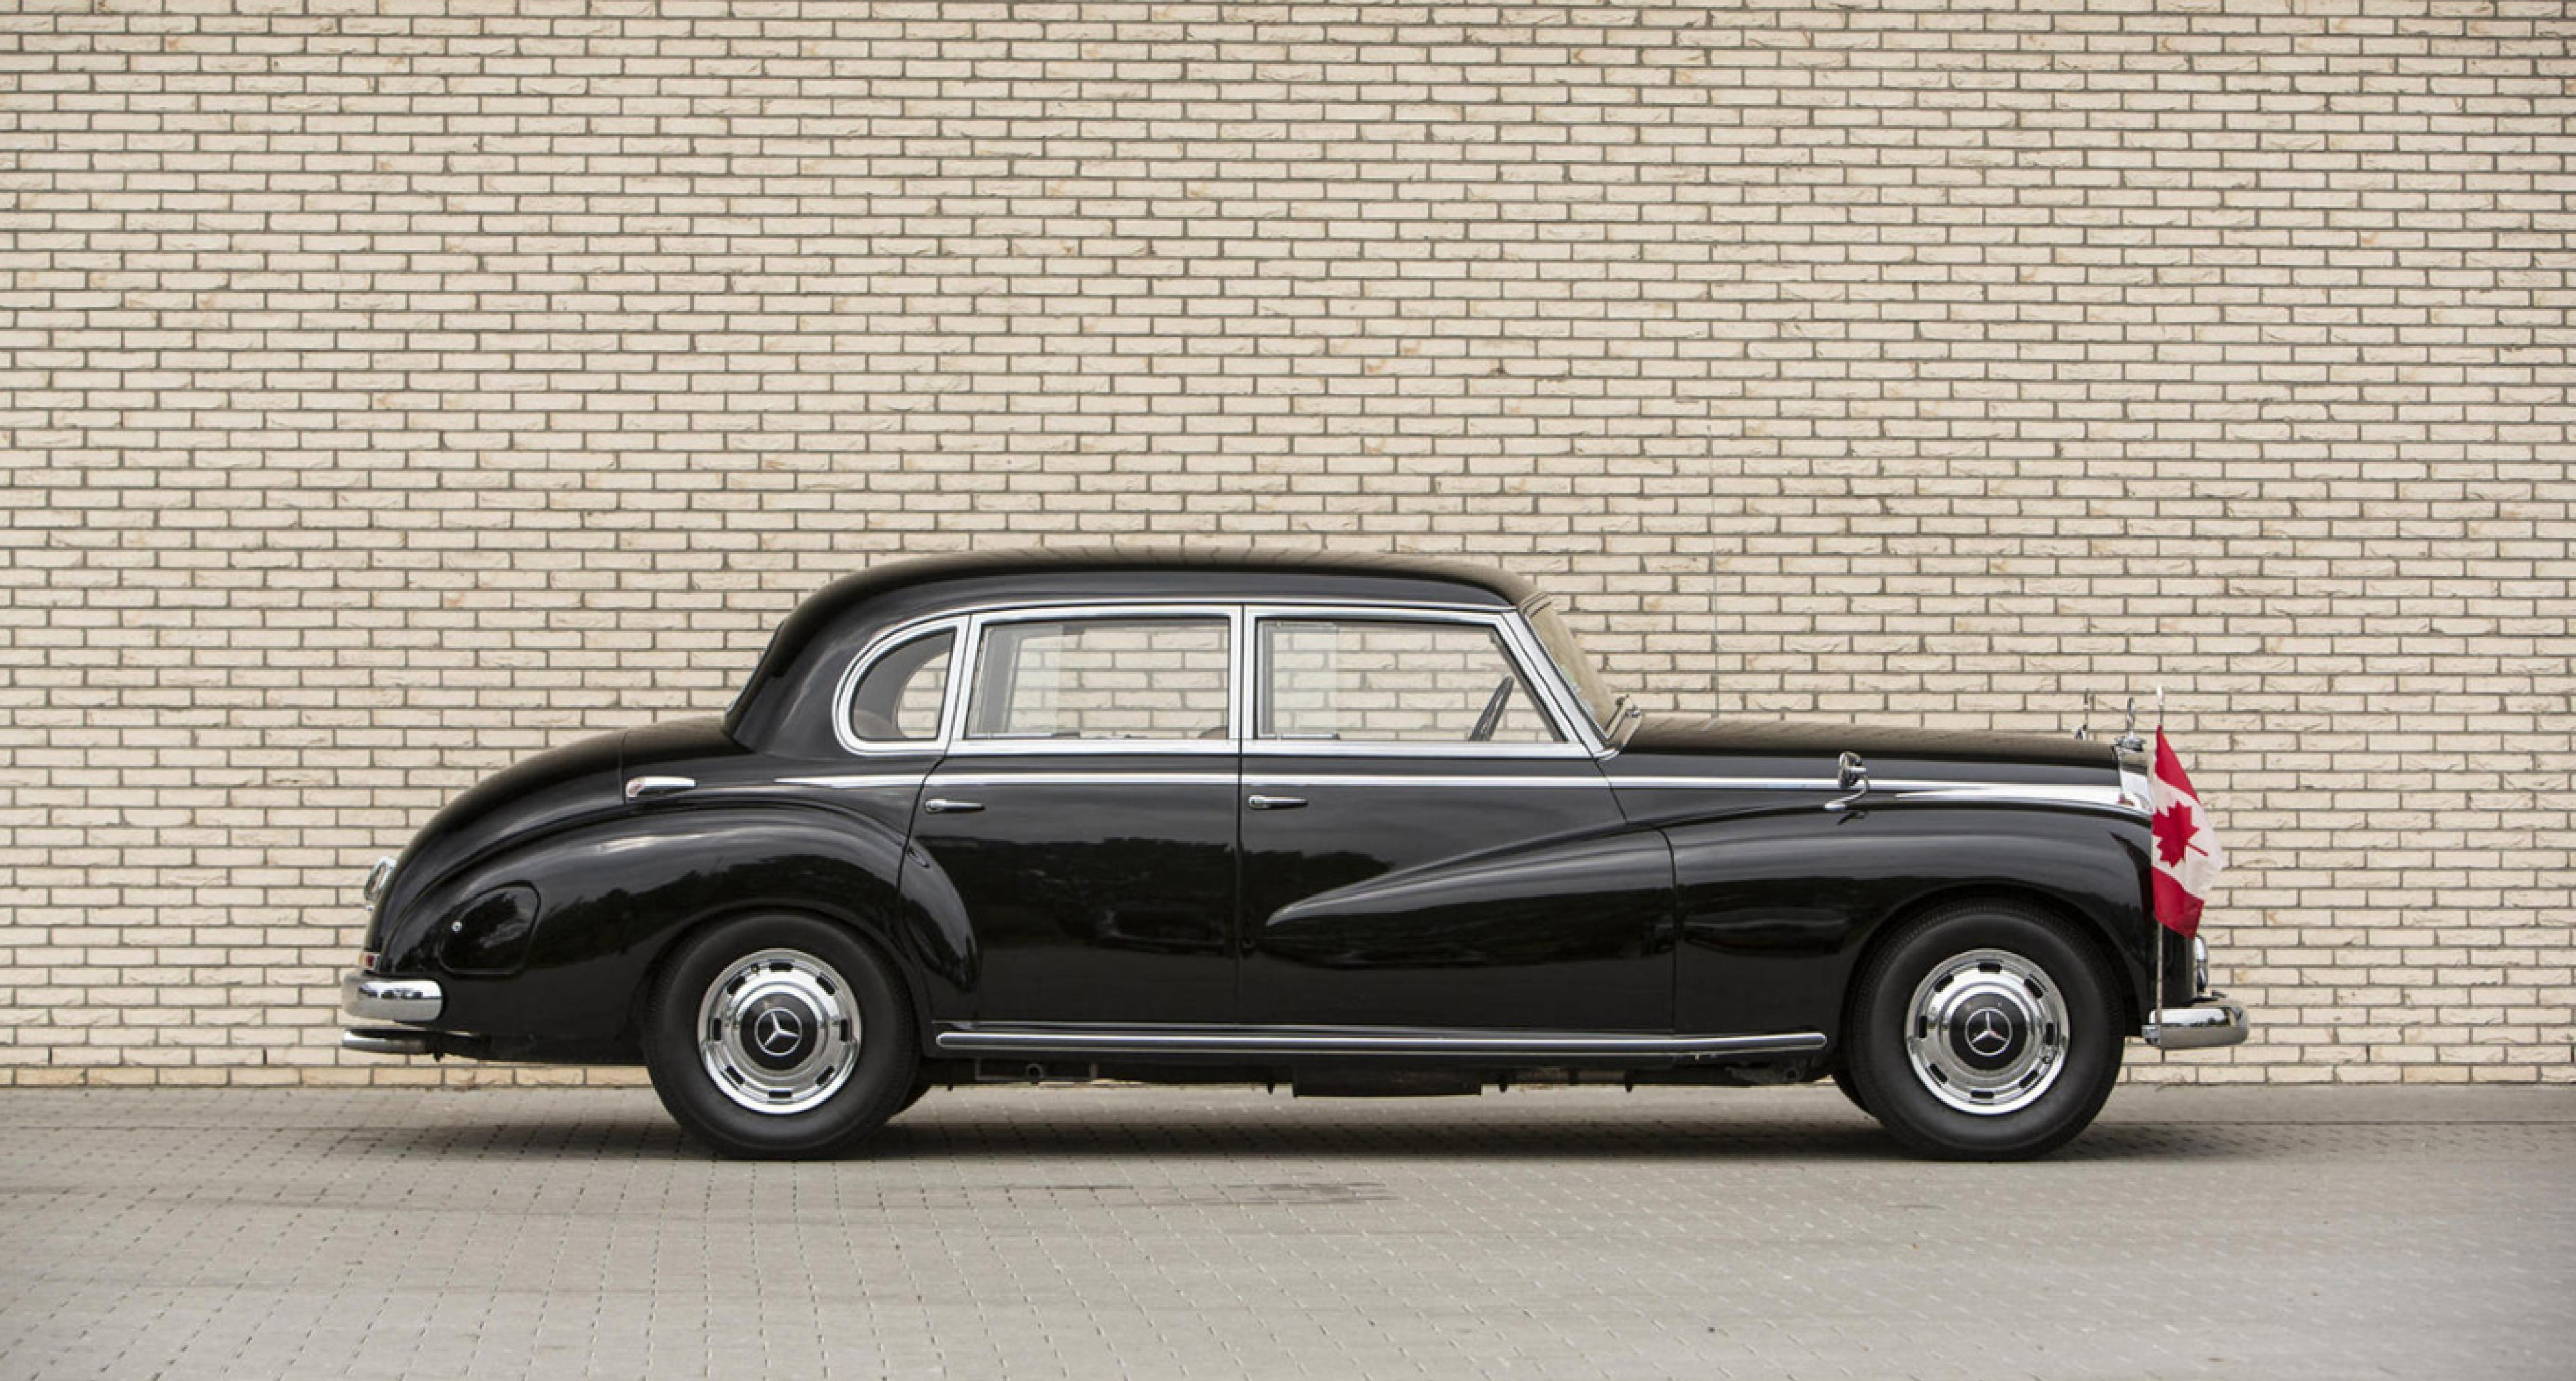 Lot 42: 1953 Mercedes-Benz 300 'Adenauer' Saloon 'Formerly the property of the family of Rudolph Sack' (€ 70,000 - 100,000)